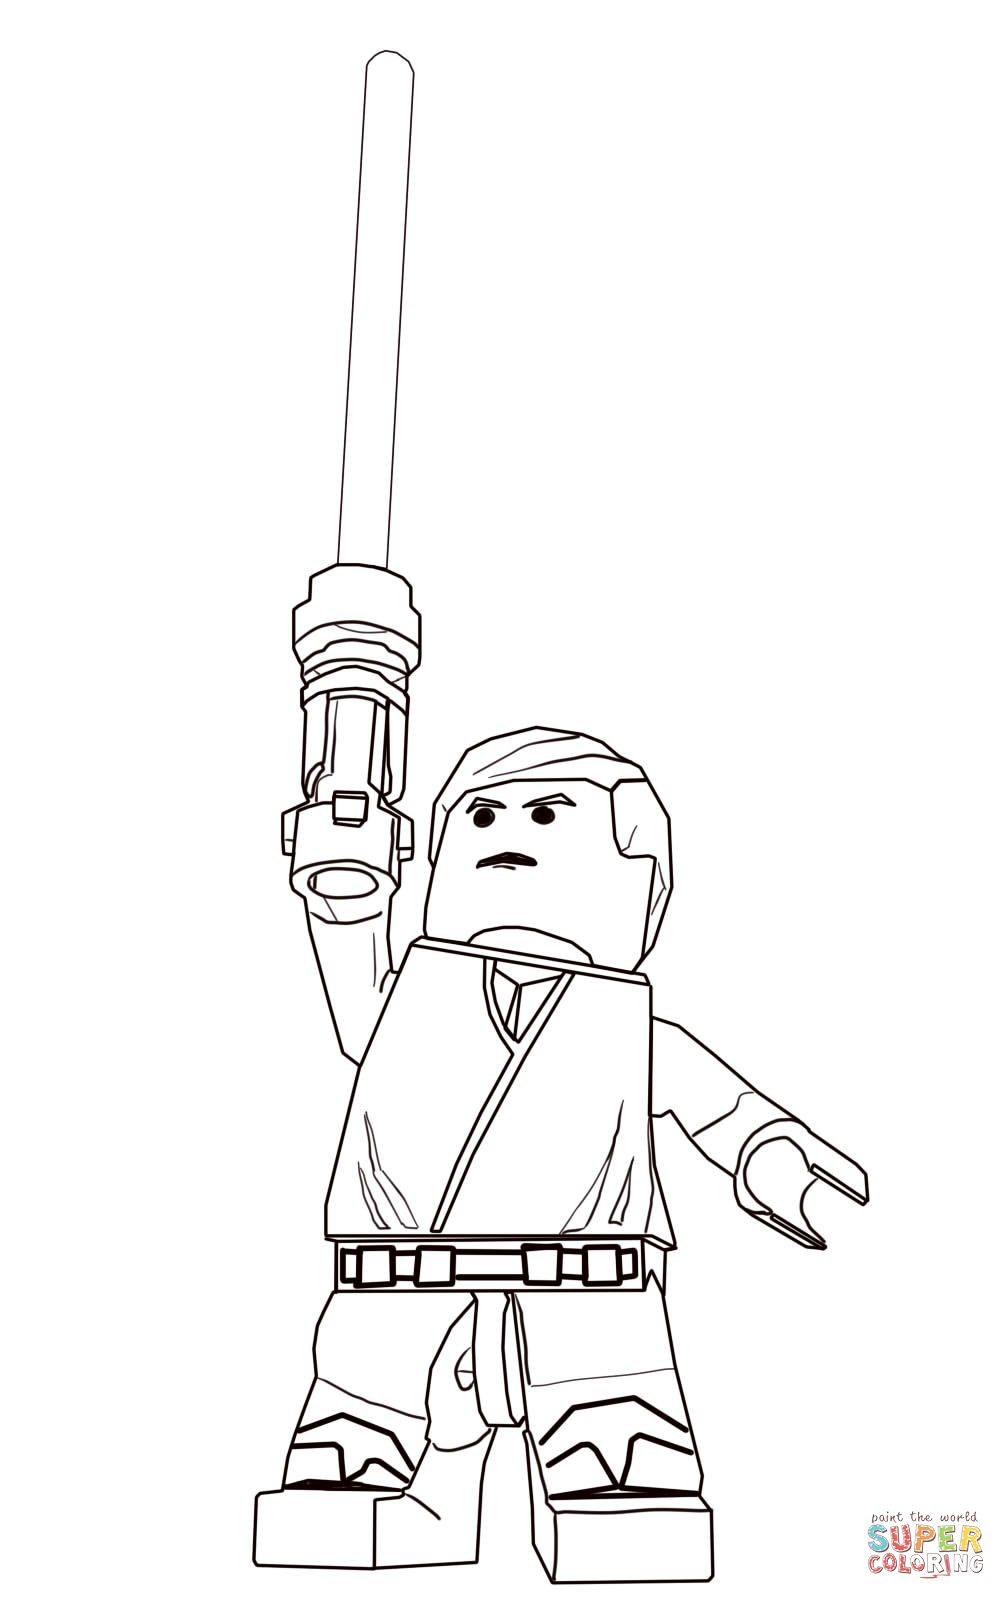 Lego Star Wars Luke Skywalker Coloring Page Supercoloring Com